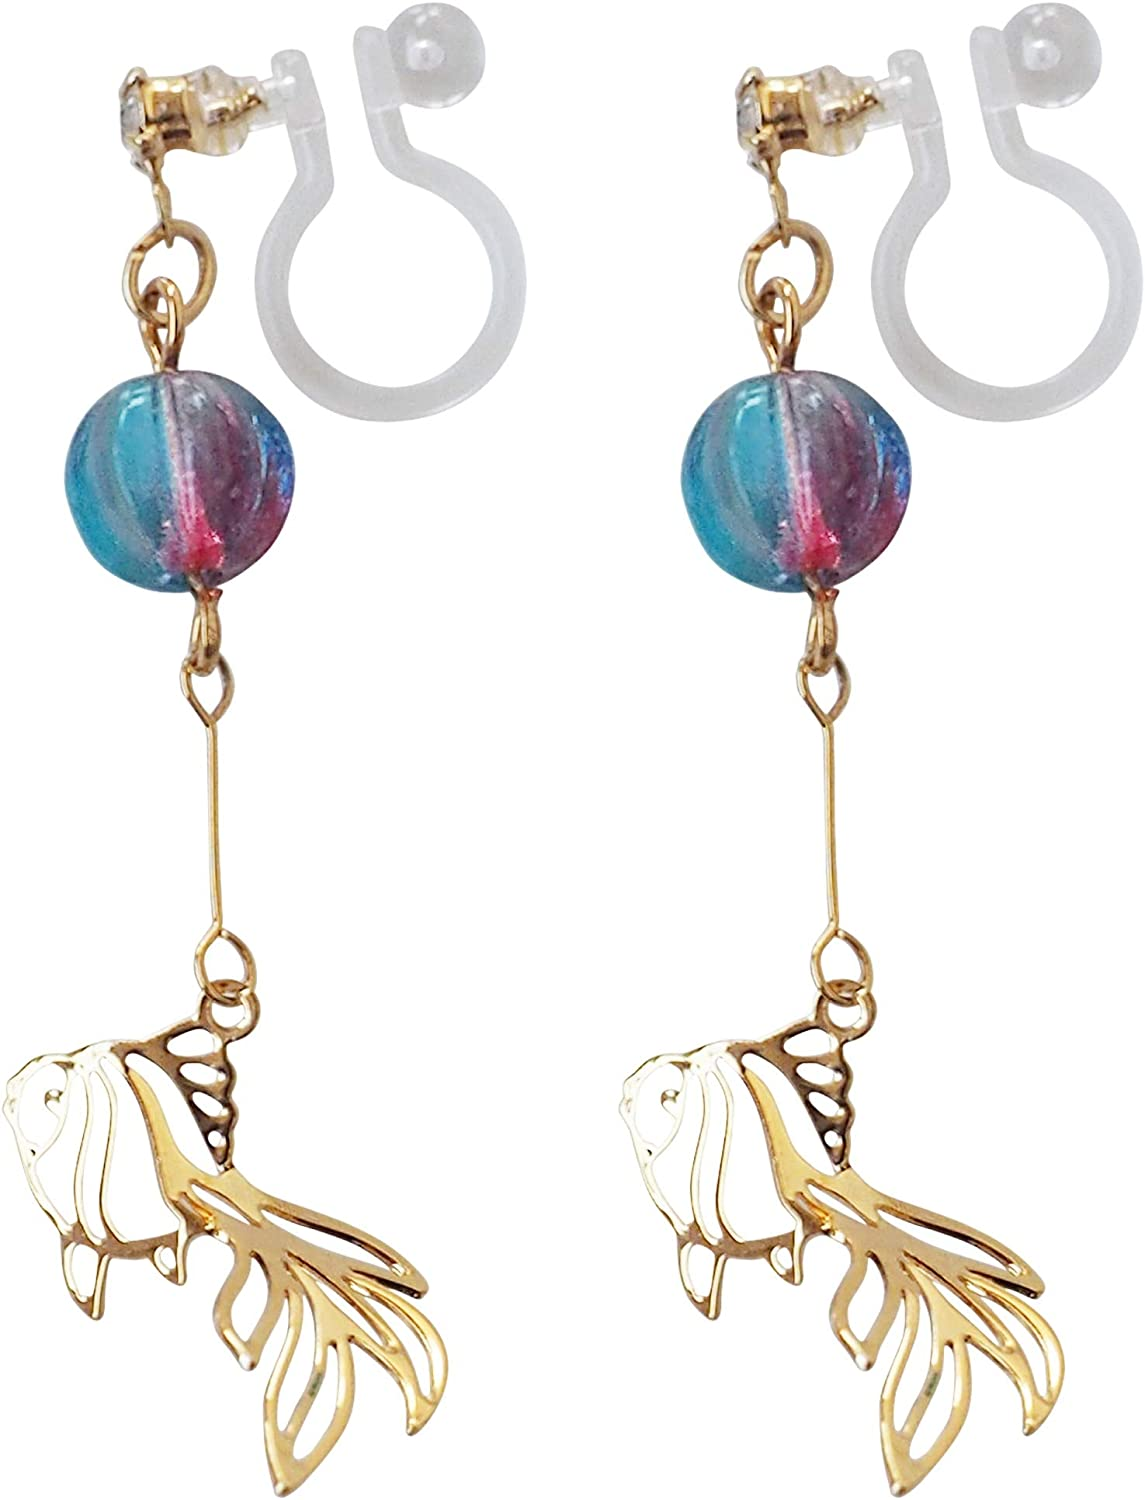 Pretty Goldfish Invisible Clip On Earrings Dangle for Women Blue Ball Non Pierced Comfortable Clip On Earrings Gold tone MiyabiGrace